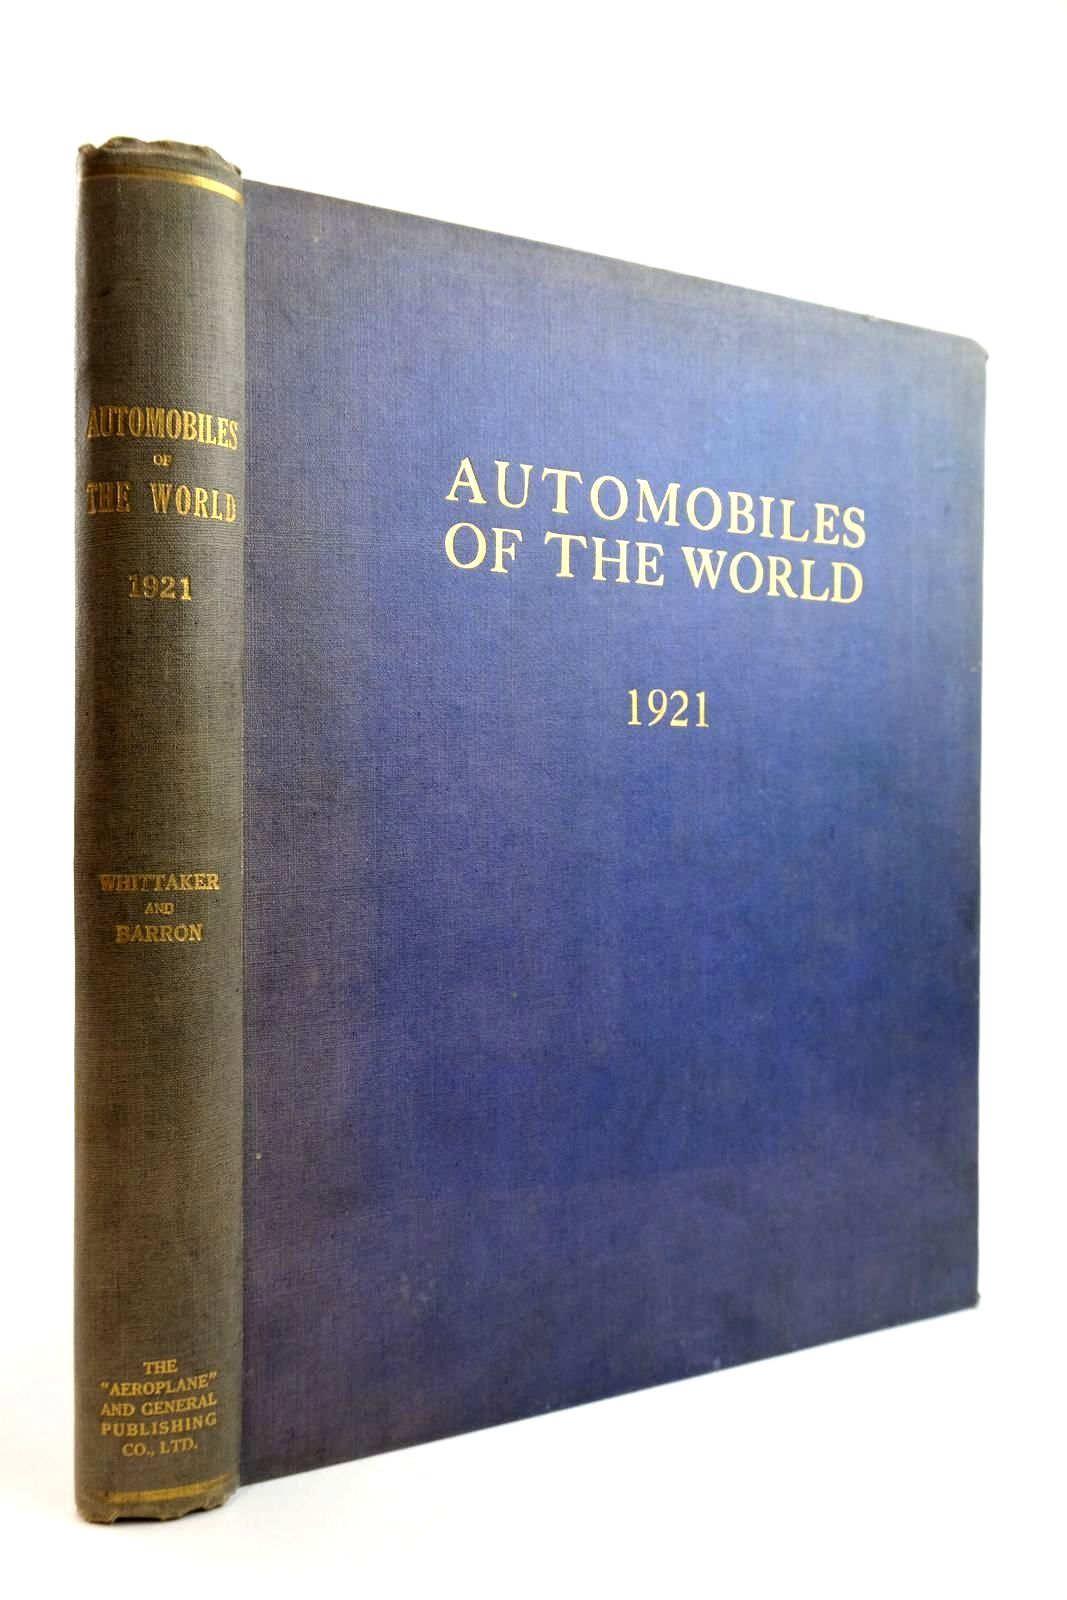 Photo of AUTOMOBILES OF THE WORLD: AN ENCYCLOPAEDIA OF THE CAR 1921 written by De B. Whittaker, W.E.